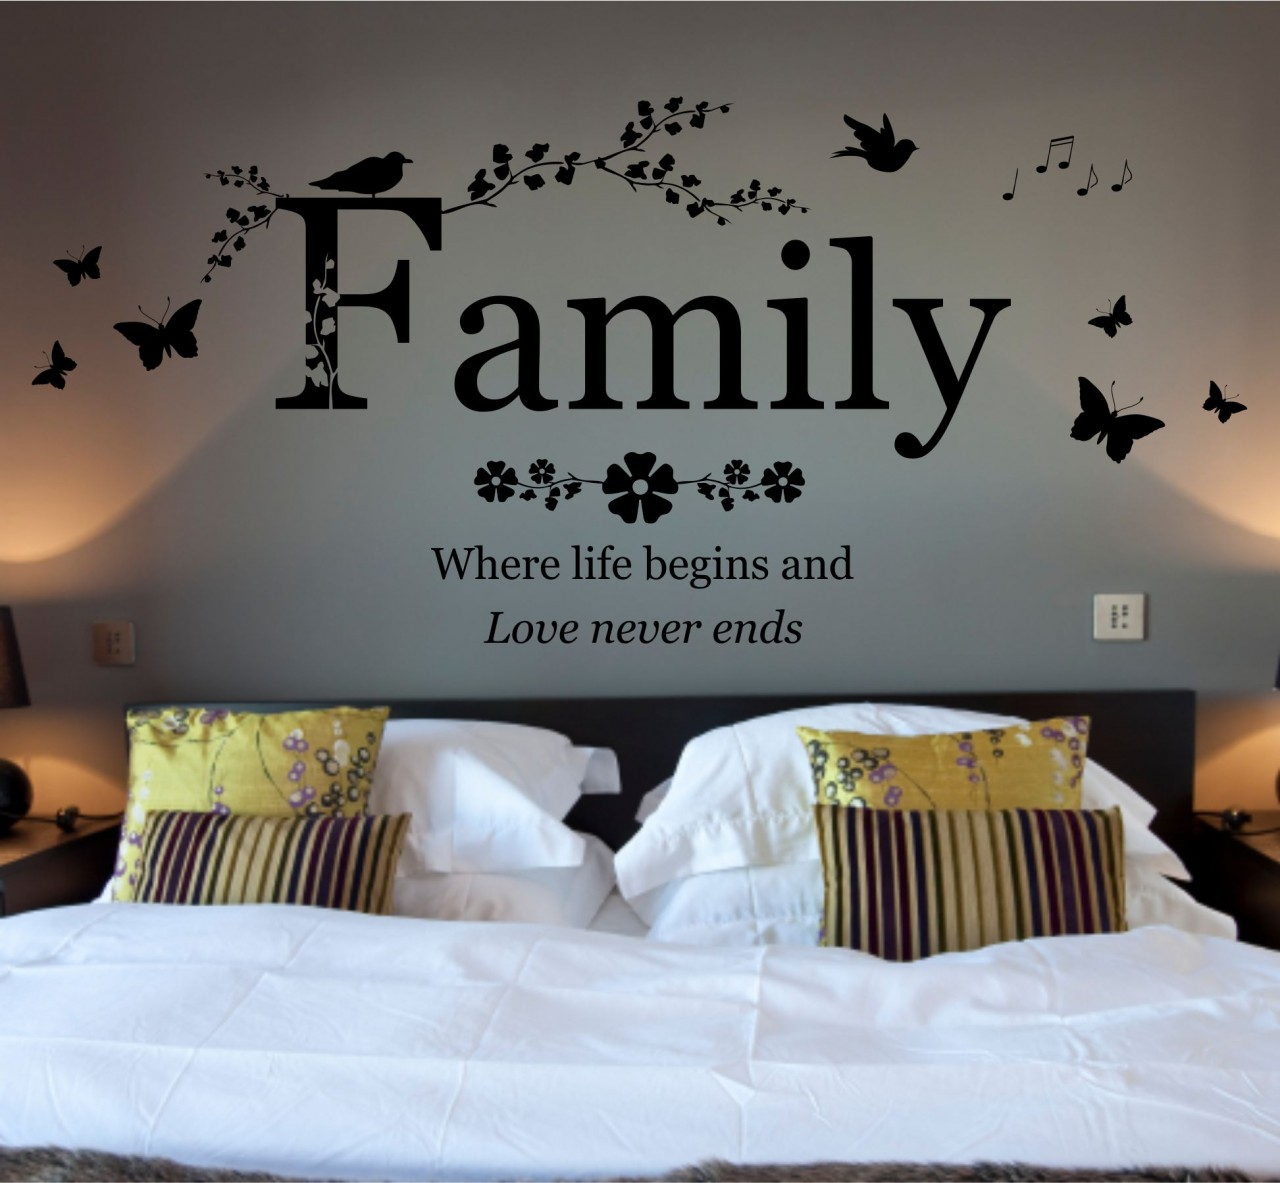 Family quotes wall art quotesgram for Family wall art